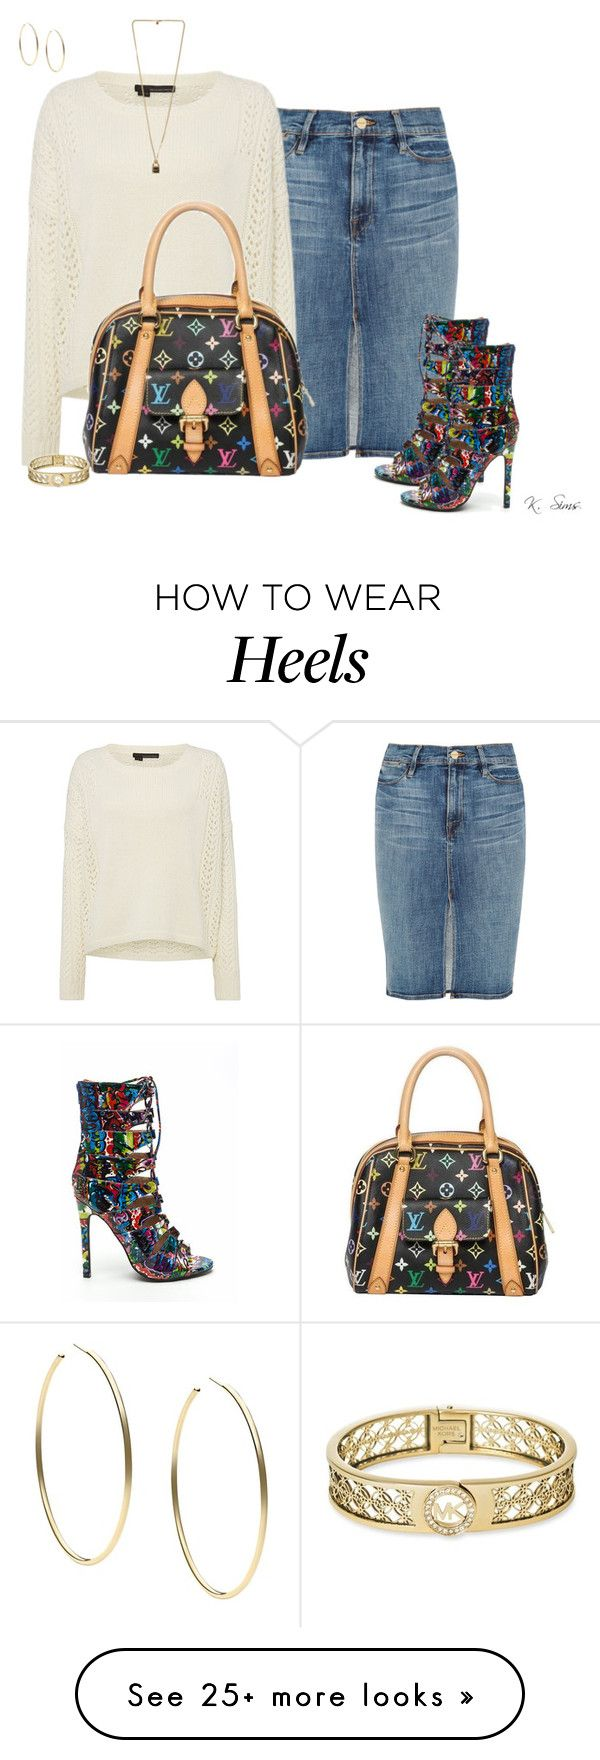 """""""Look at those heels!!"""" by ksims-1 on Polyvore featuring Frame Denim, 360 Sweater, Louis Vuitton and Michael Kors"""